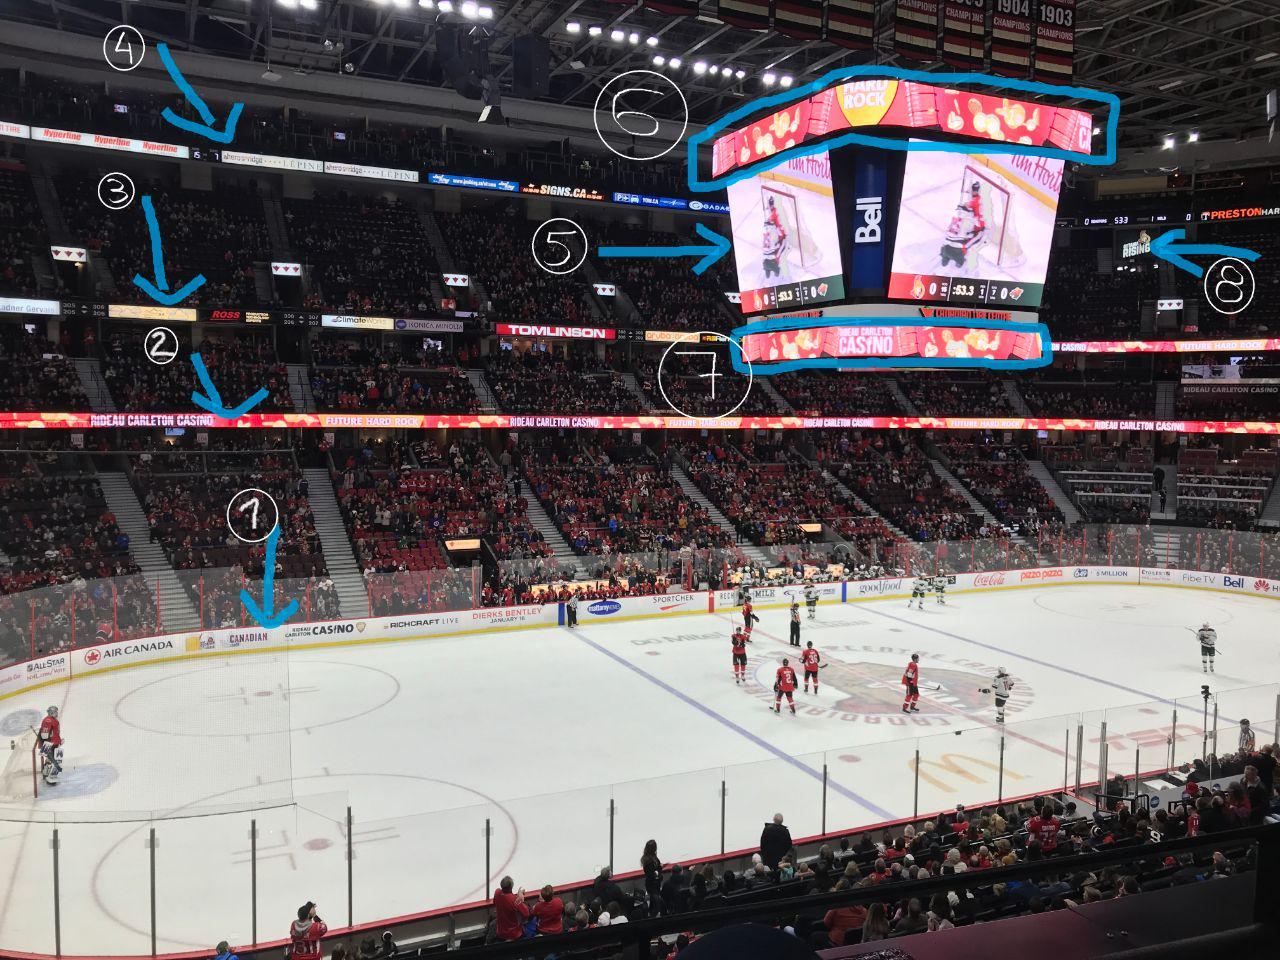 Hockey game and ads locations